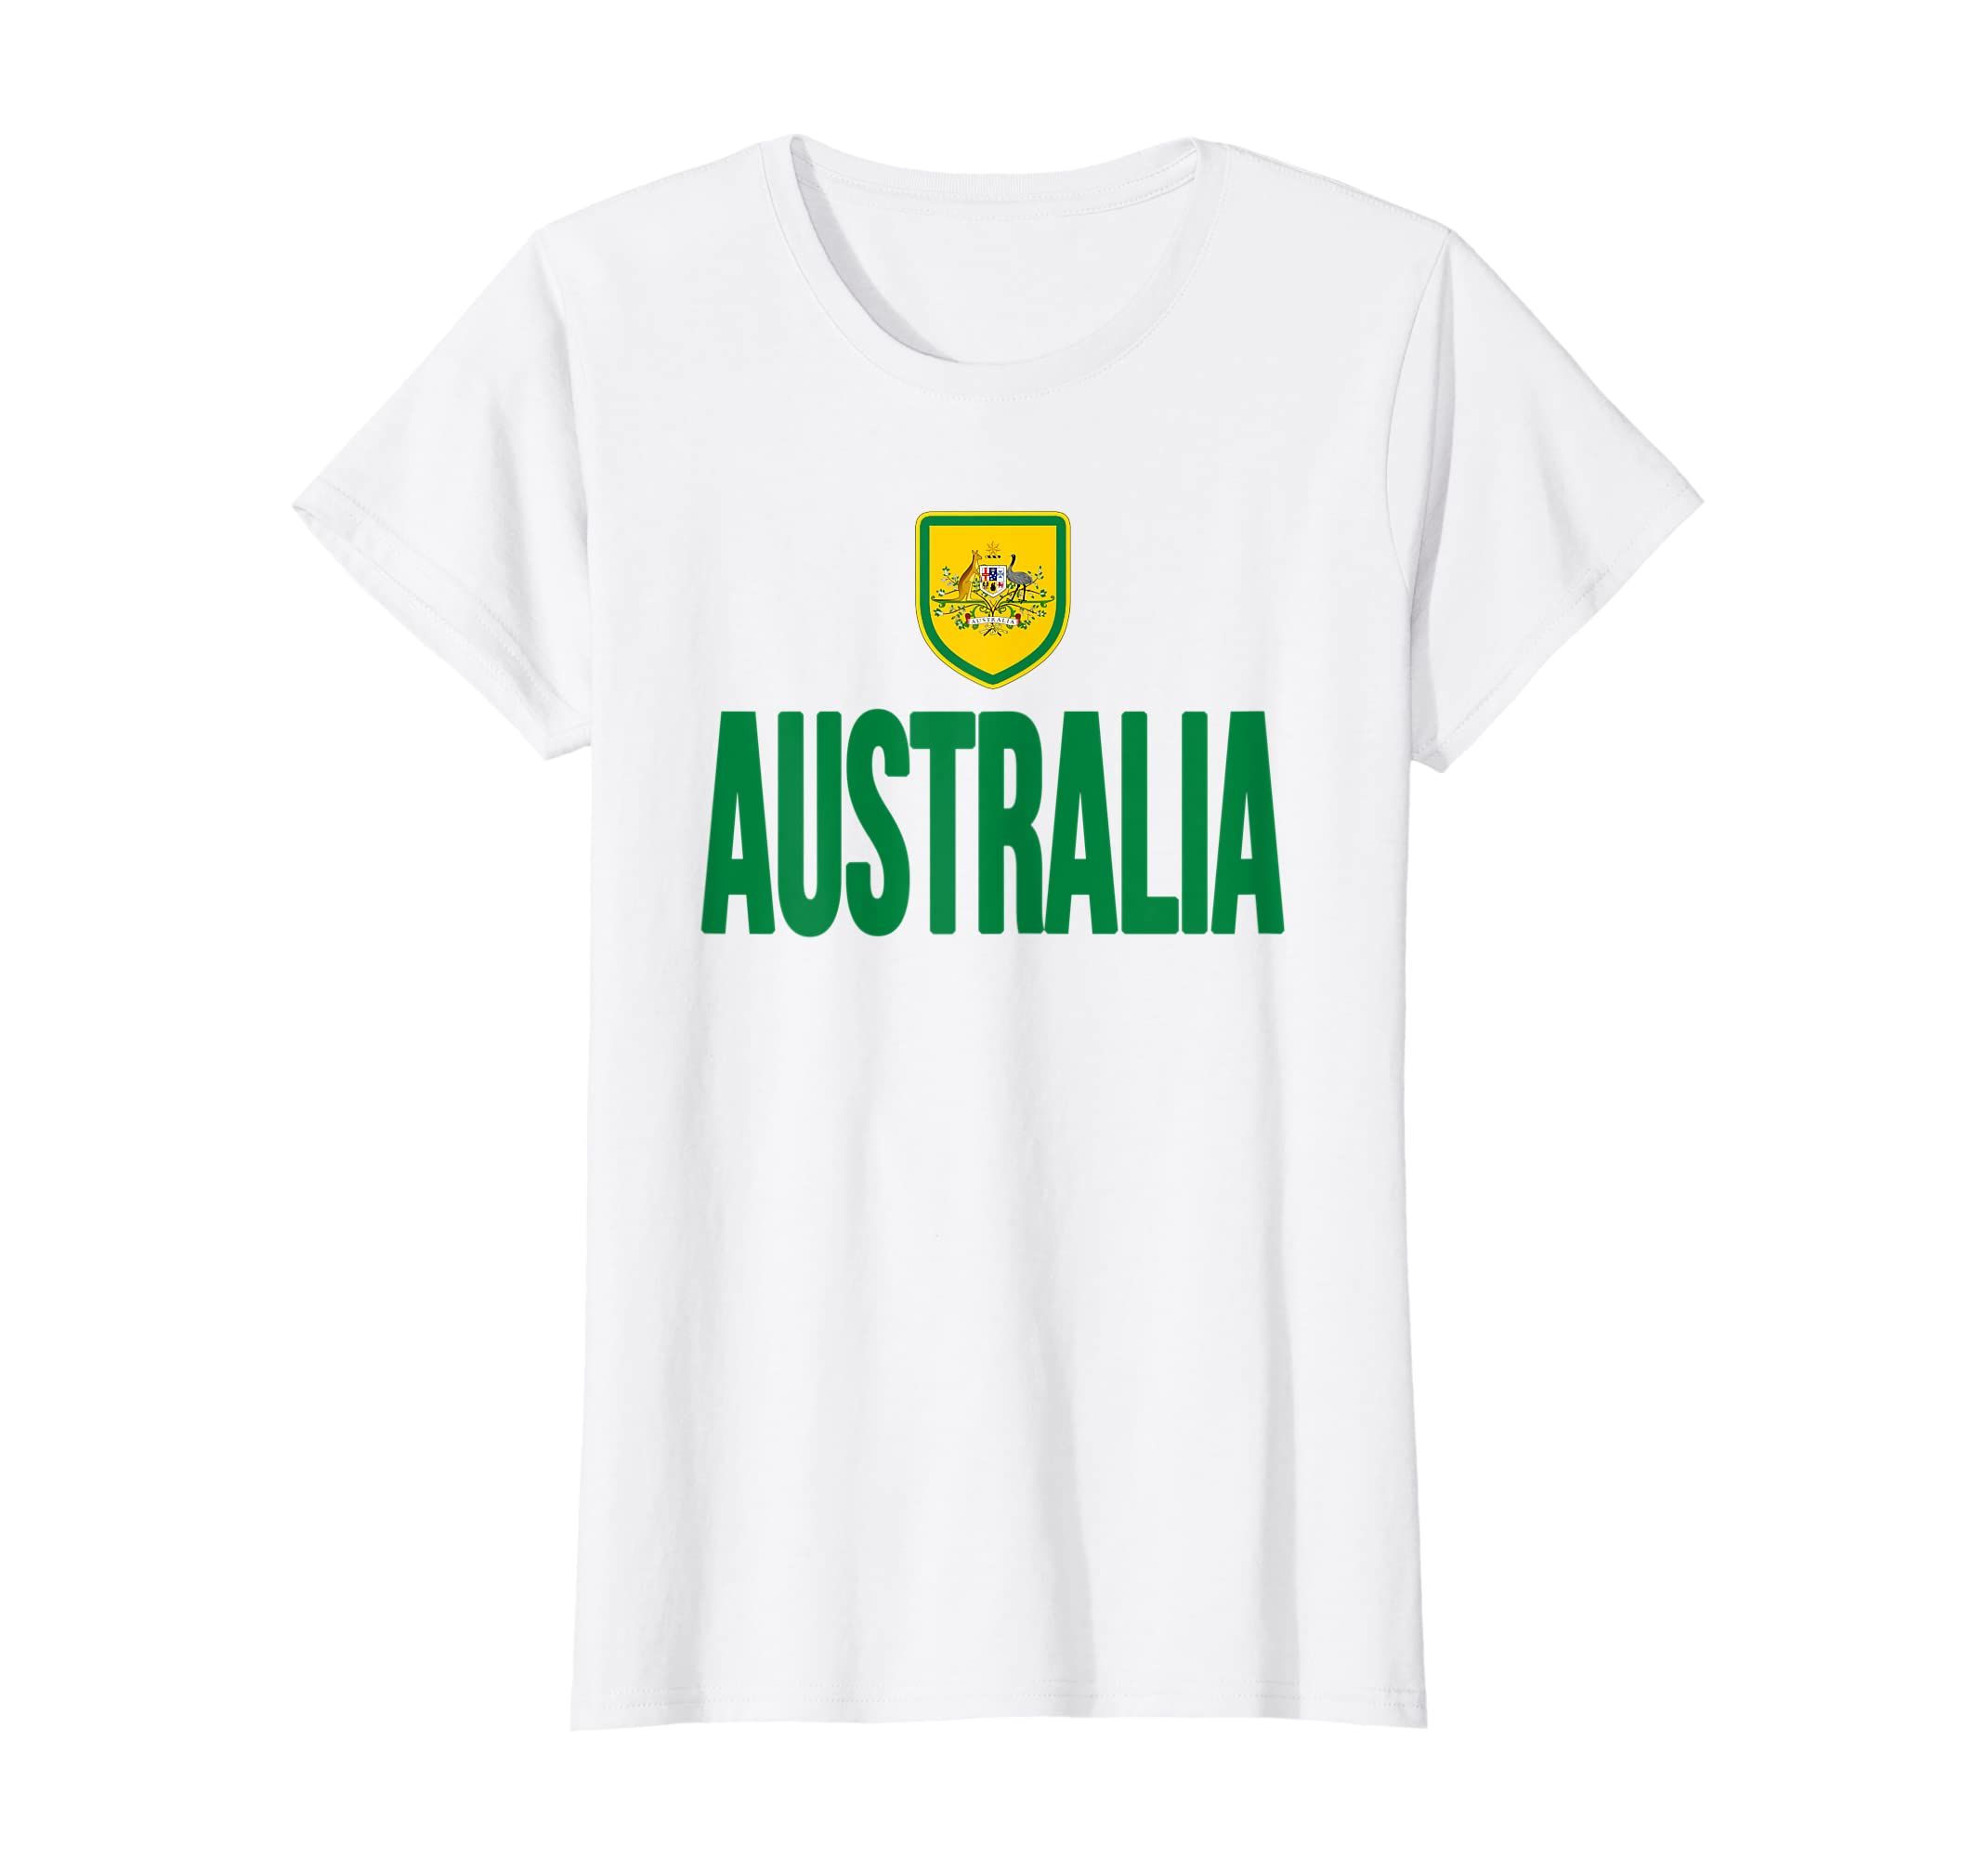 97a7ff69c Amazon.com: Australia T-shirt Australian Flag Gift Love Home Souvenir:  Clothing